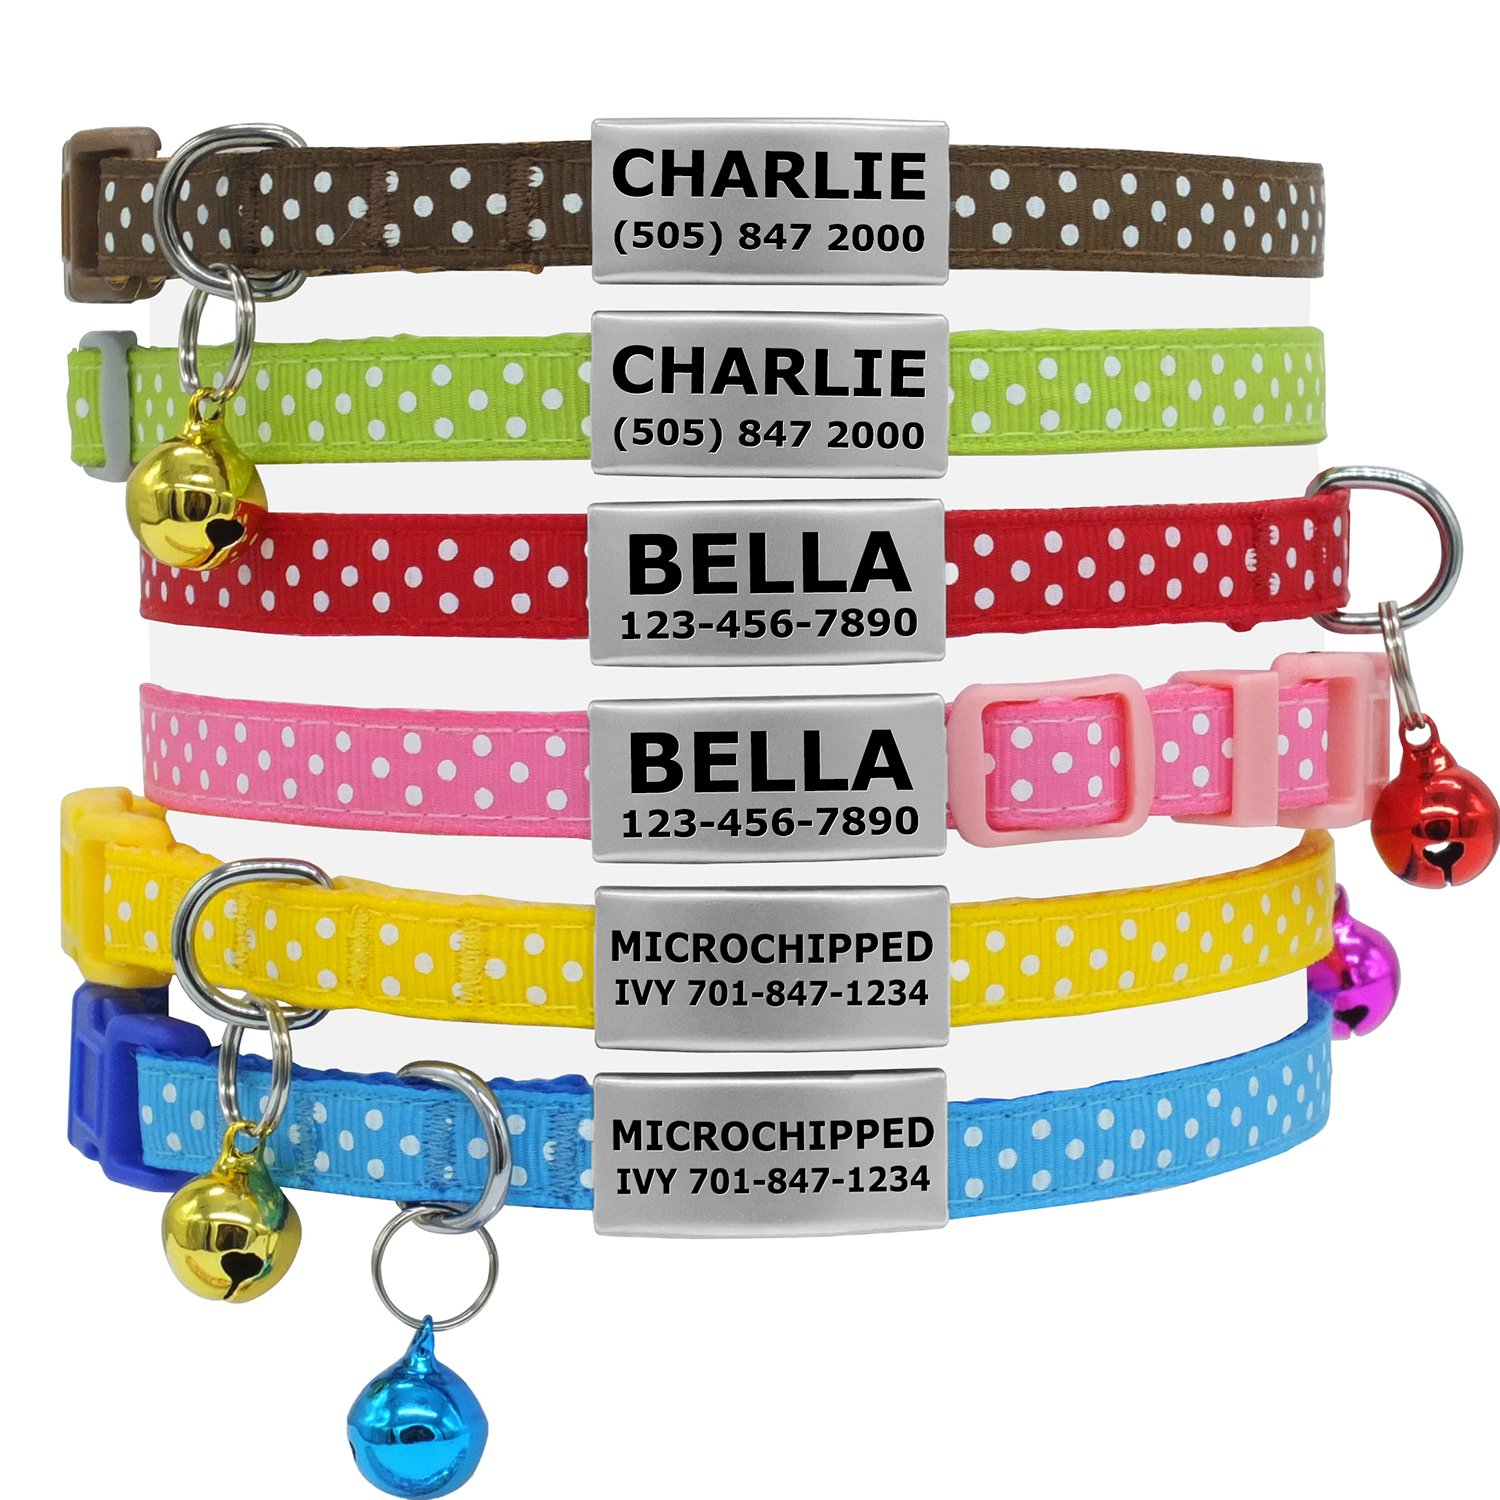 Pet Supplies : Vcalabashor Custom Cat Collars with Jingle Bell/Stainless Steel No Noise Slide-On Tags On Collar/3 Lines Personalized Text/Polka Dot Pattern ...